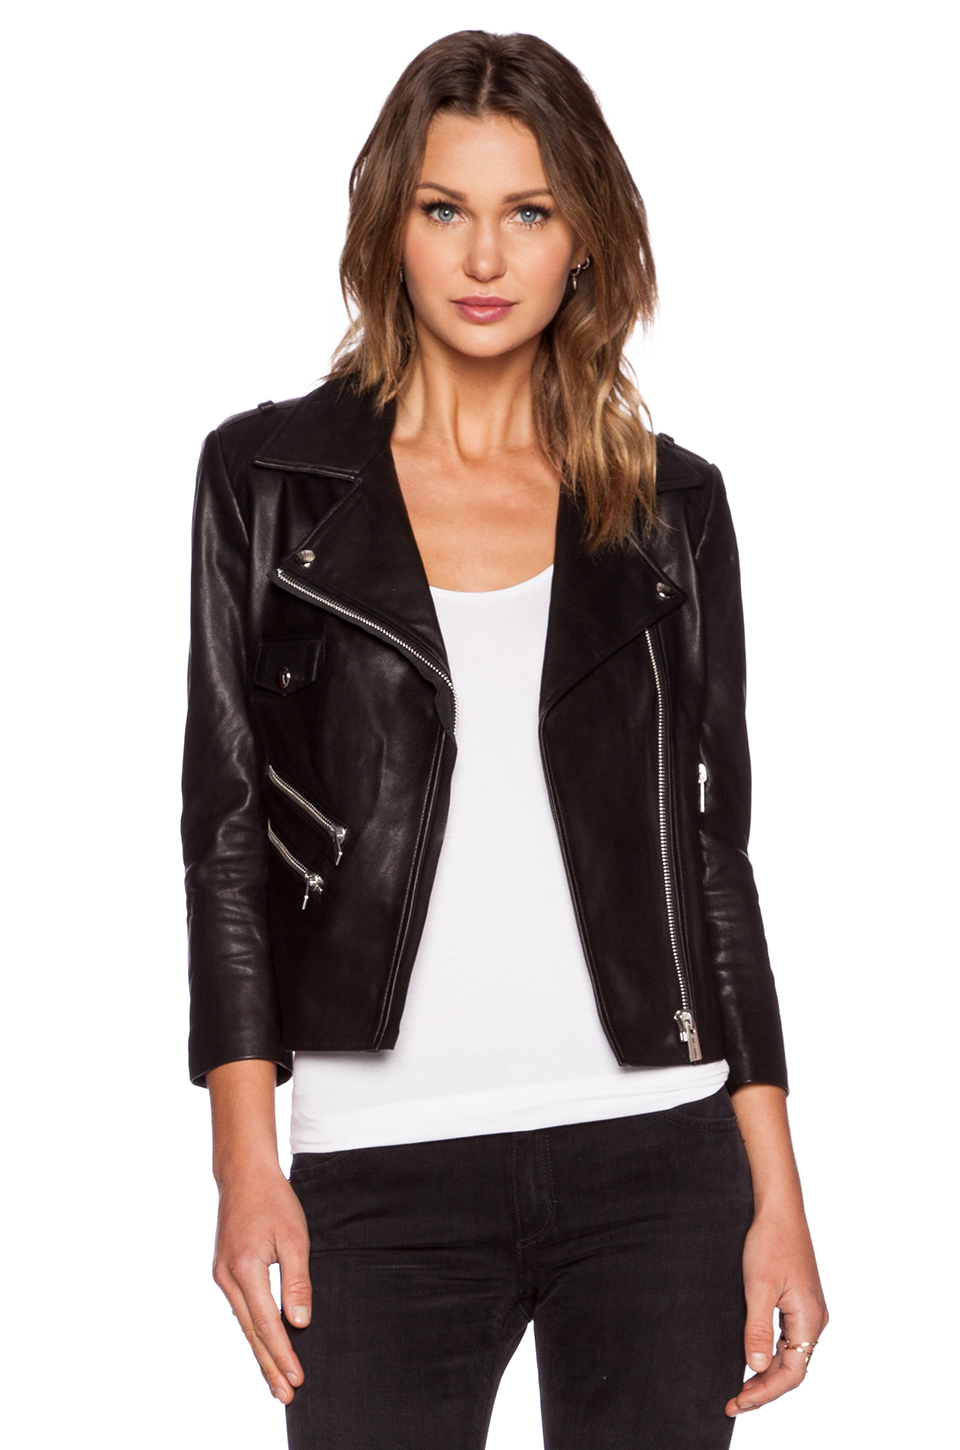 Cut from % calf leather, the cropped moto jacket is sculpted to exude an elevated garment with rebellious edge. Pebbled leather, silver hardware and a removable belt .